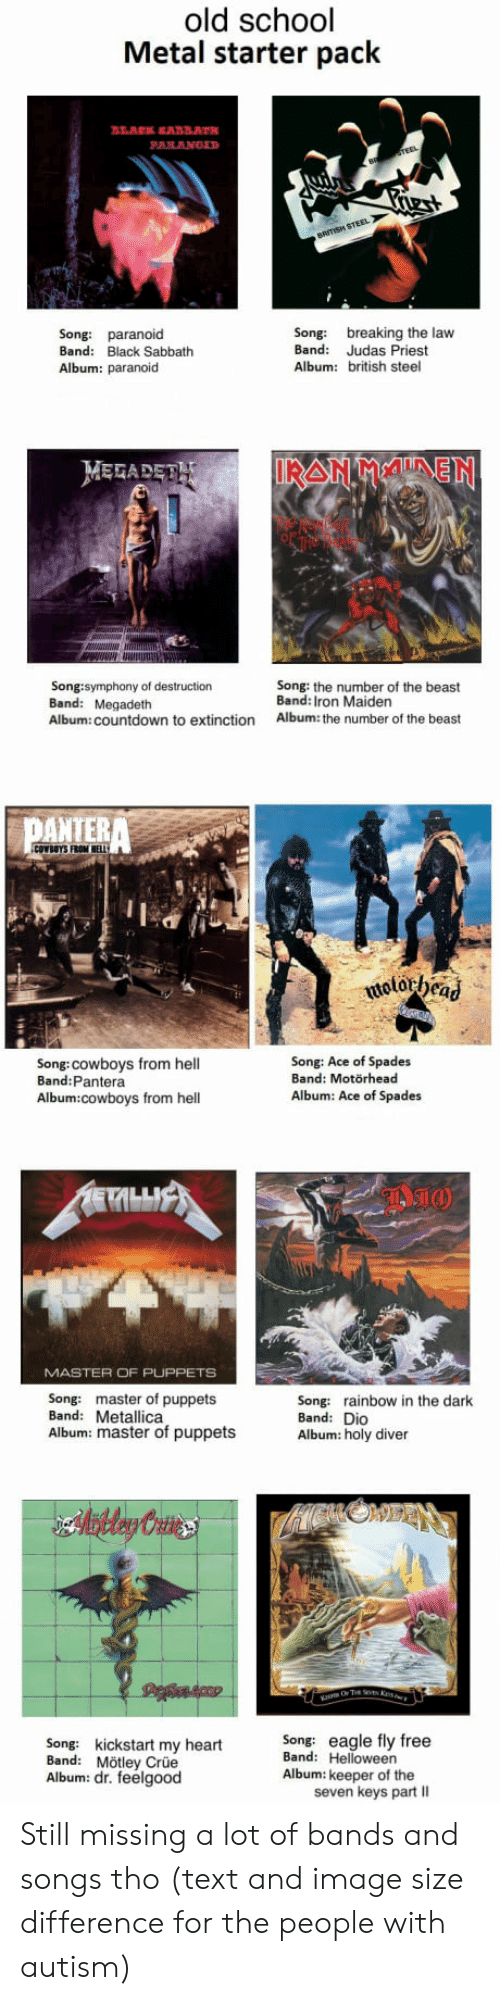 Metallica: old school  Metal starter pack  Song: paranoid  Band: Black Sabbath  Album: paranoid  Song: breaking the law  Band: Judas Priest  Album: british steel  MEFADET  Song:symphony of destruction  Band: Megadeth  Album: countdown to extinction  Song: the number of the beast  Band: Iron Maiden  Album: the number of the beast  PATERA  Song:cowboys from hell  Band:Pantera  Song: Ace of Spades  Band: Motörhead  Album: Ace of Spades  Album:cowboys from hell  MASTER OF PUPPETS  Song: master of puppets  Band: Metallica  Album: master of puppets  Song: rainbow in the dark  Band: Dio  Album: holy diver  Song: kickstart my heartSong: eagle fly free  Band: Mötley Crüe  Album: dr. feelgood  Band: Helloween  Album: keeper of the  seven keys part II Still missing a lot of bands and songs tho (text and image size difference for the people with autism)